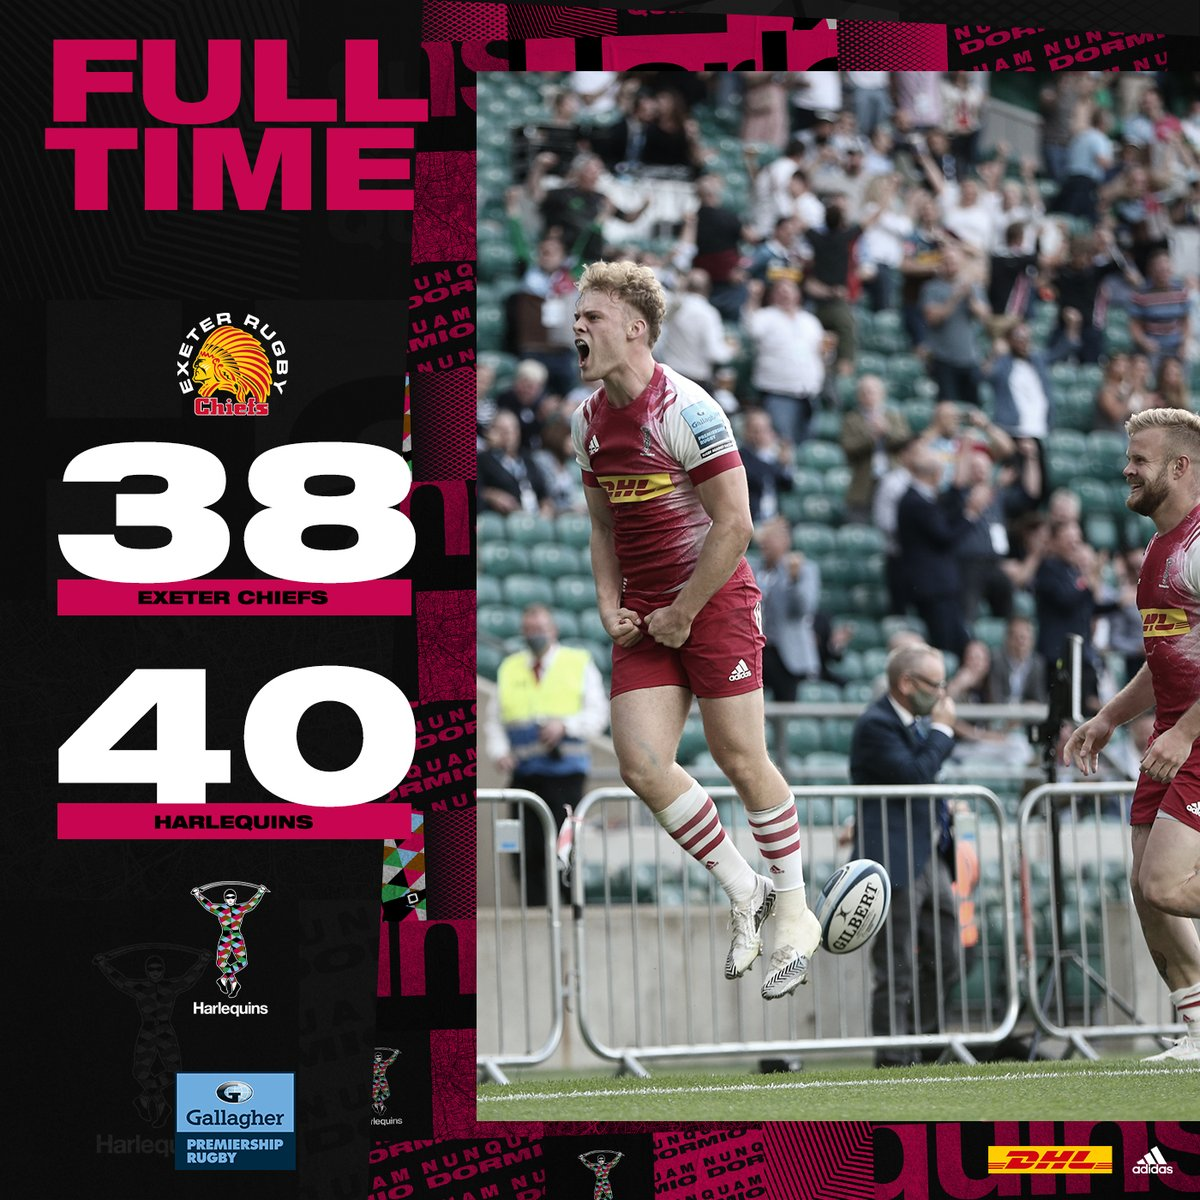 Awesome!! Such an entertaining game and such a brilliant result #coyq